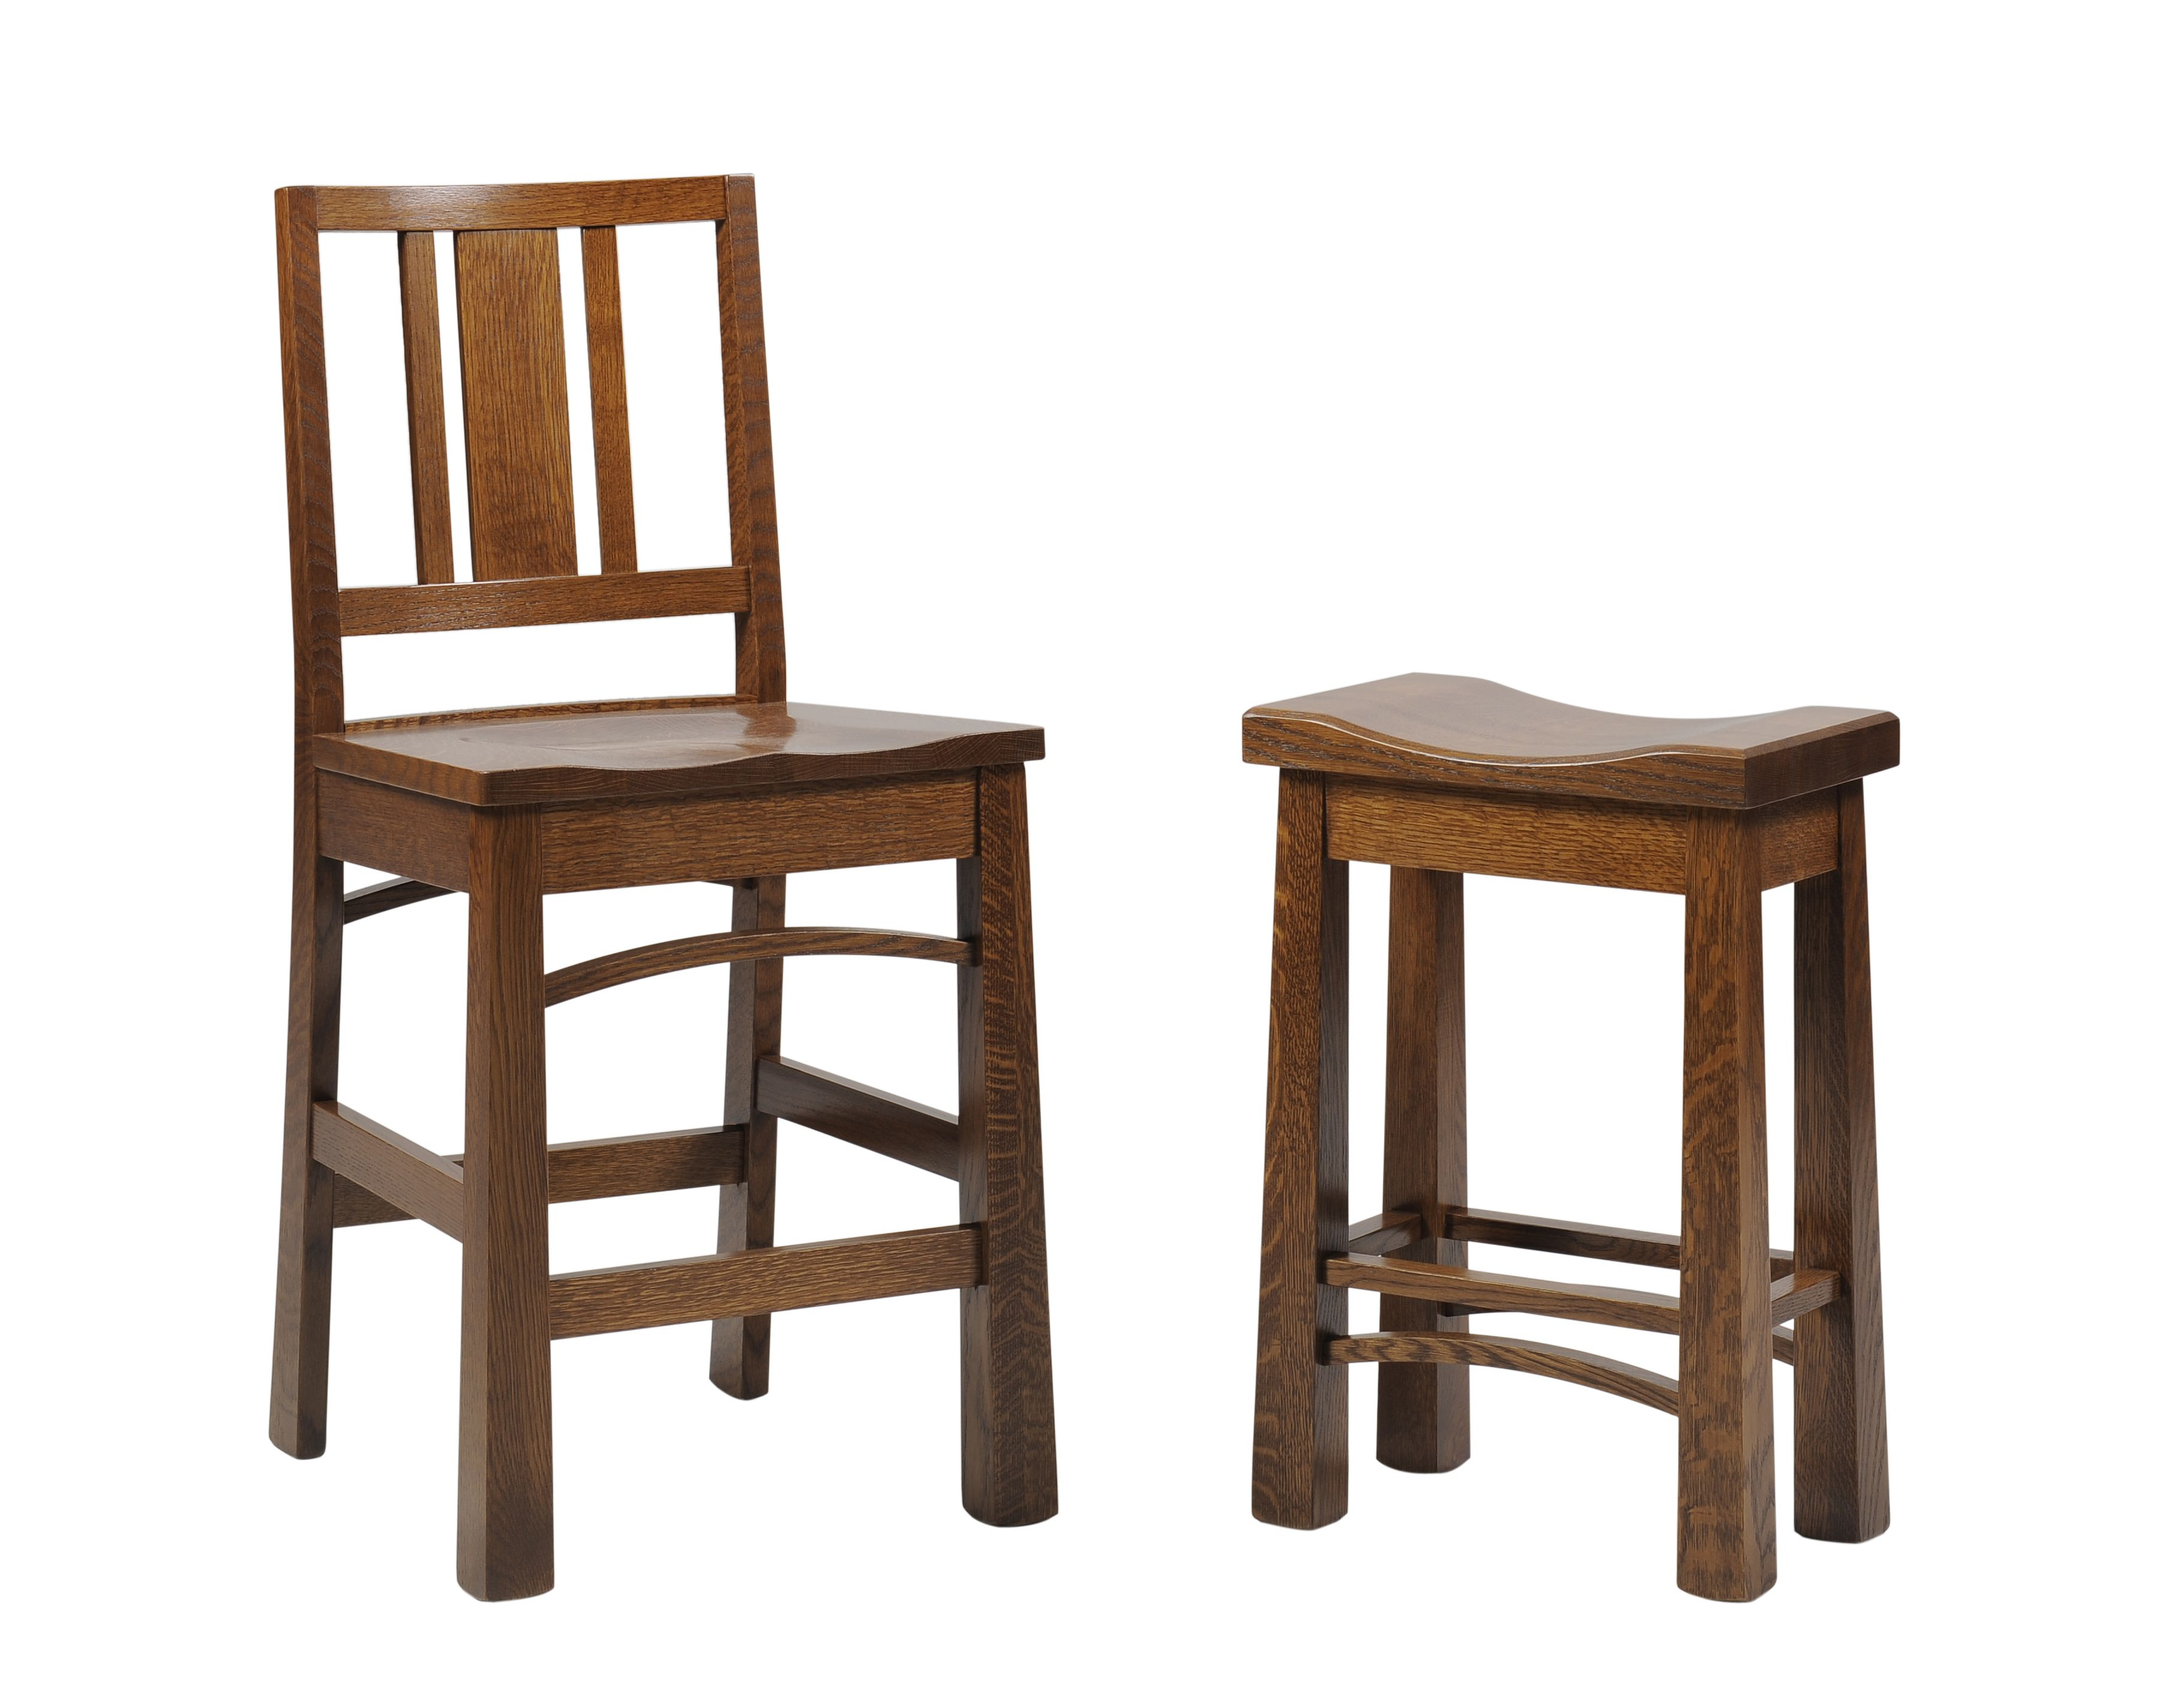 Bradford Mission Barstool Saddle Stool Bar Stools Craftsman Dining Chairs Stool